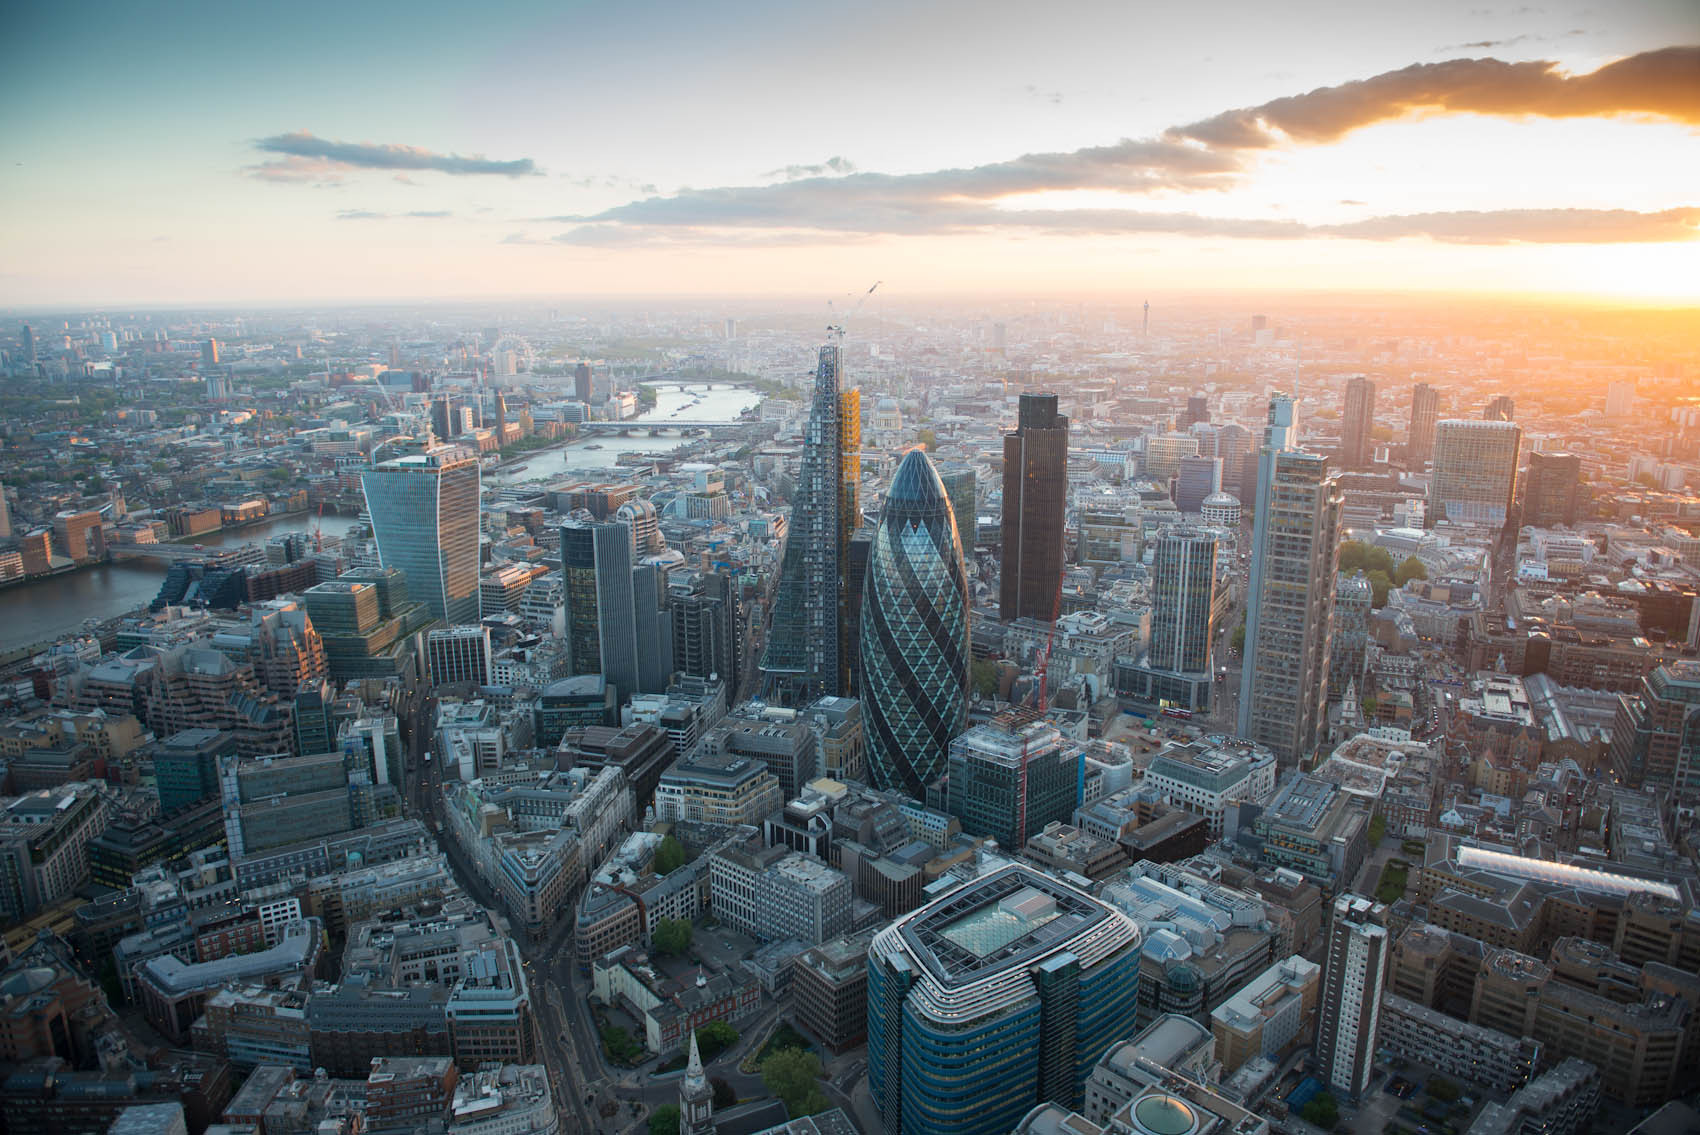 New London Architecture Reveals The Latest Figures in The City's Tall Building Boom, © Jason Hawkes